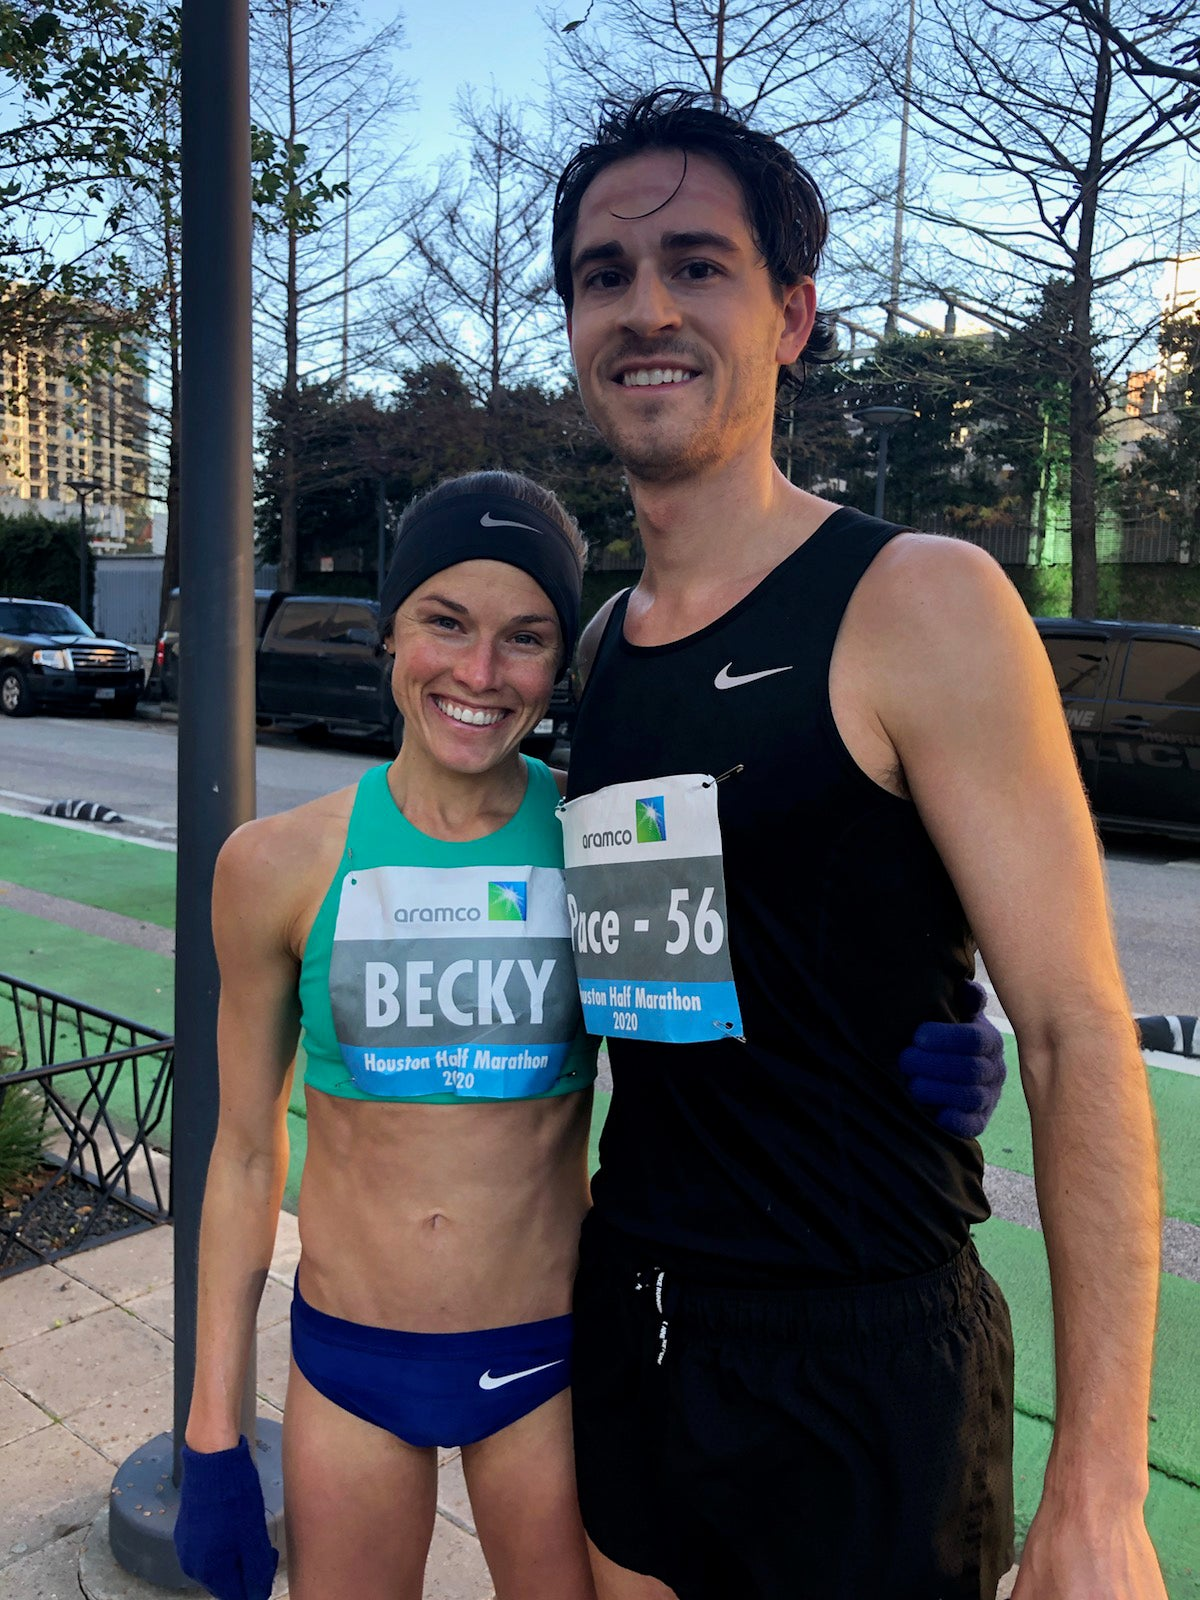 Becky Wade and husband after Houston Half Marathon